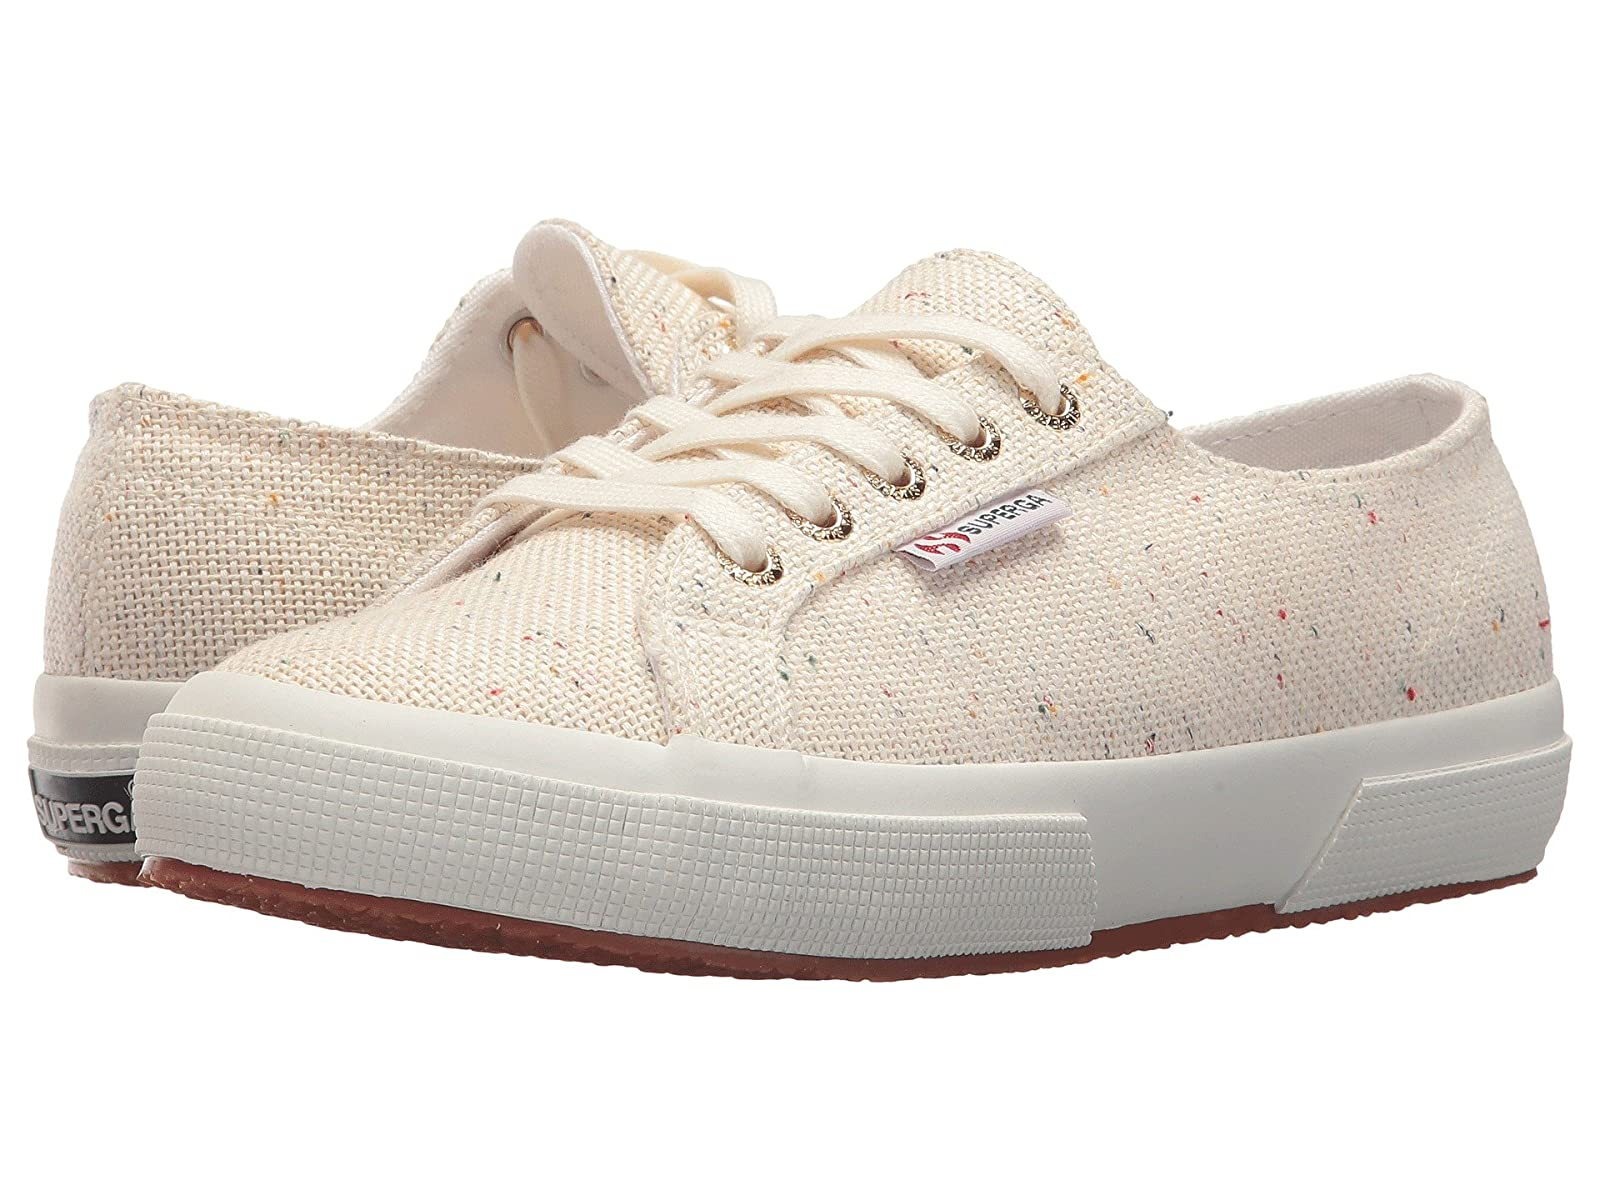 Superga 2750 Specklew SneakerCheap and distinctive eye-catching shoes